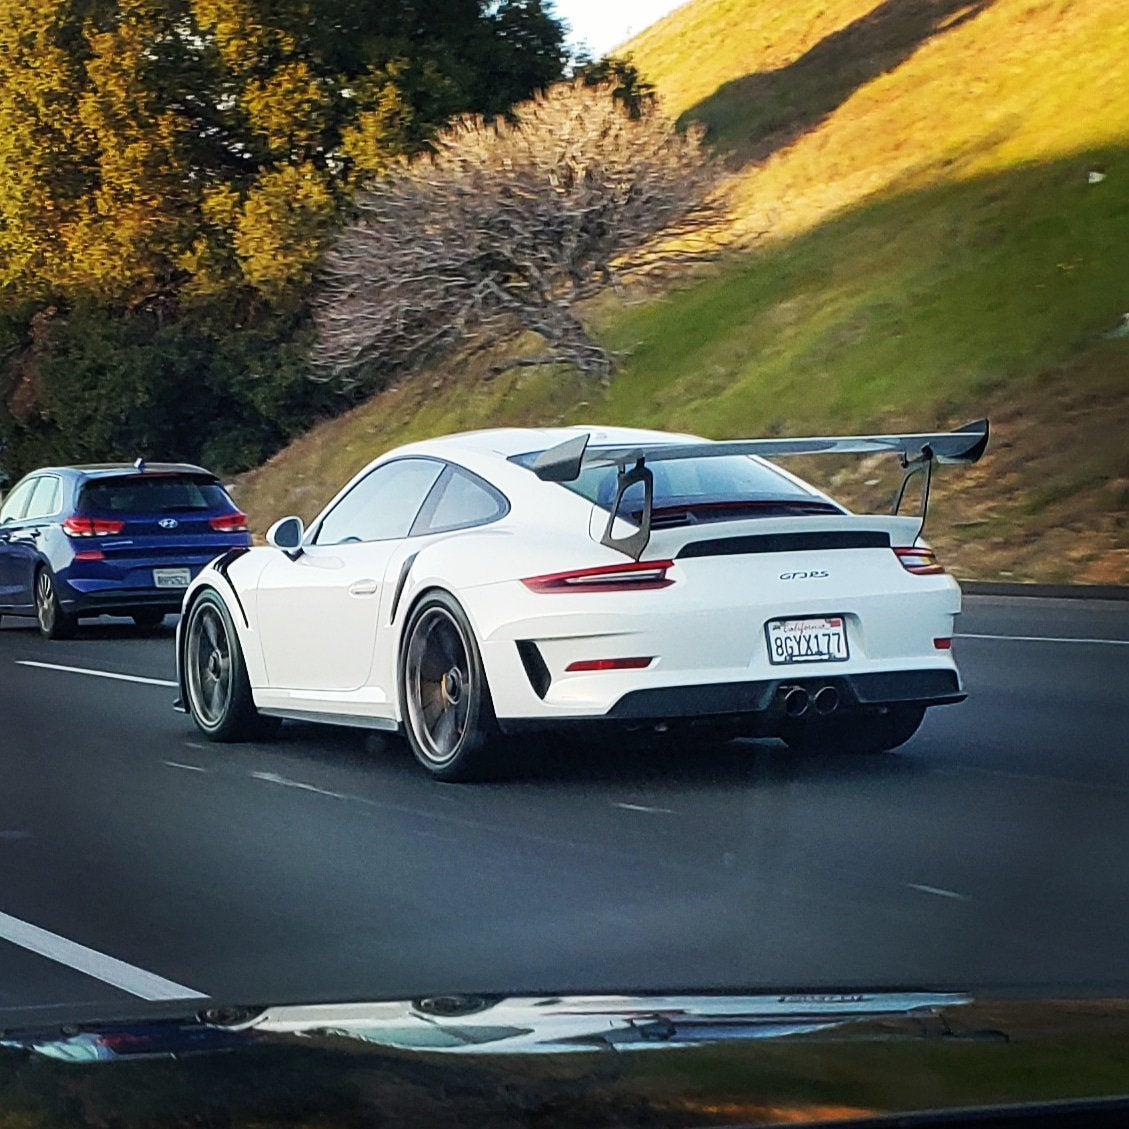 Another GT3RS